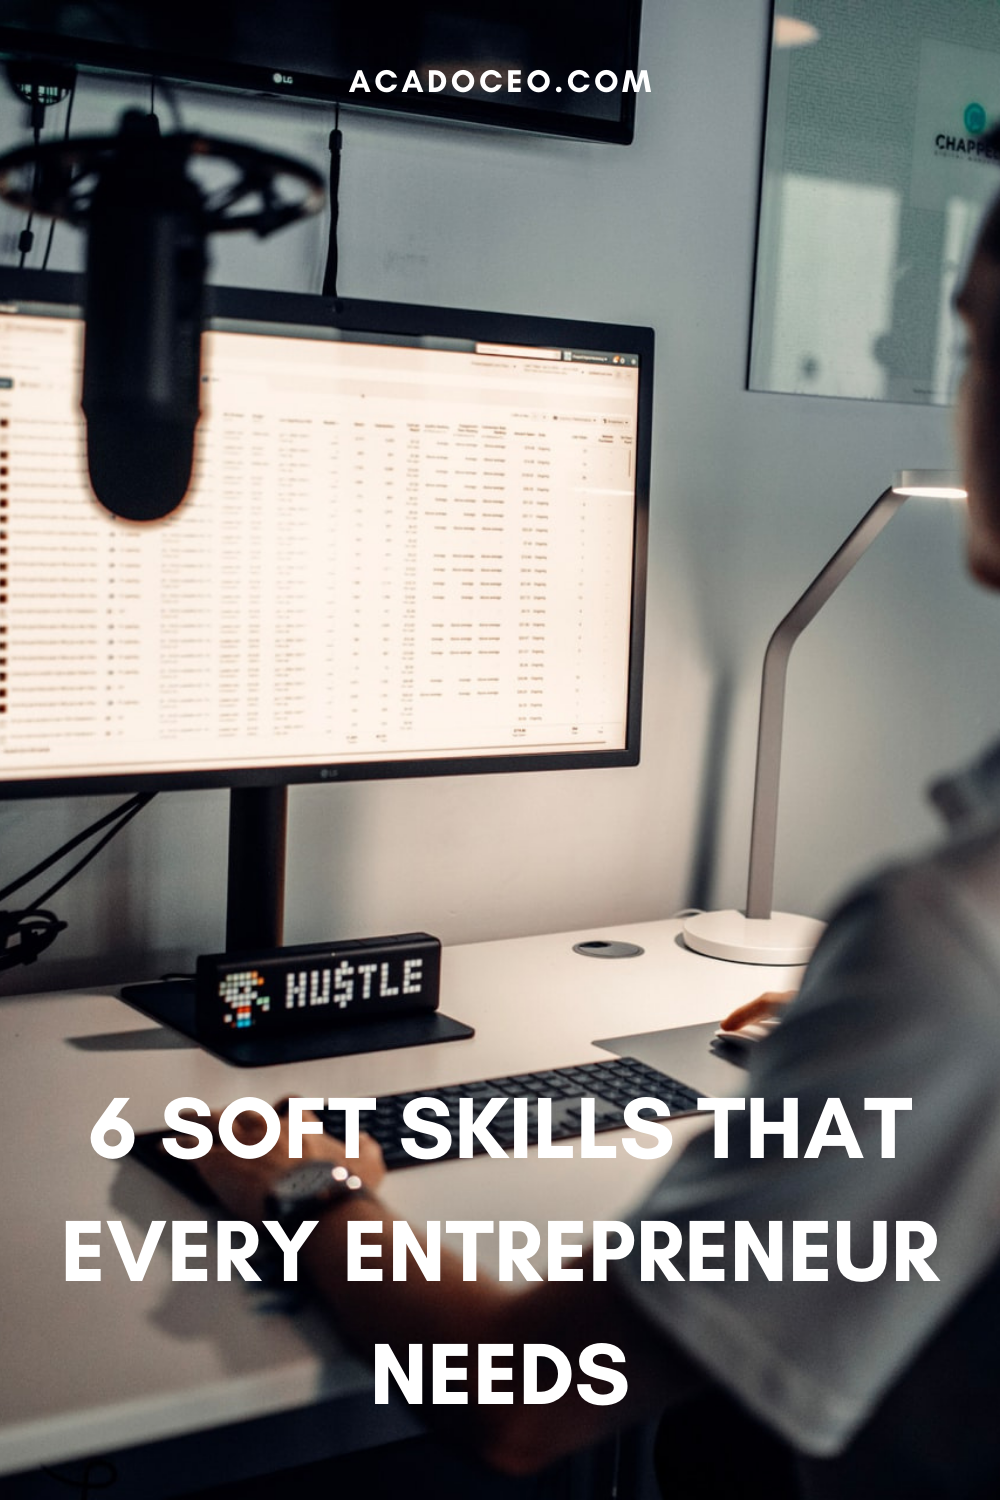 6 SOFT SKILLS THAT EVERY ENTREPRENEUR NEEDS